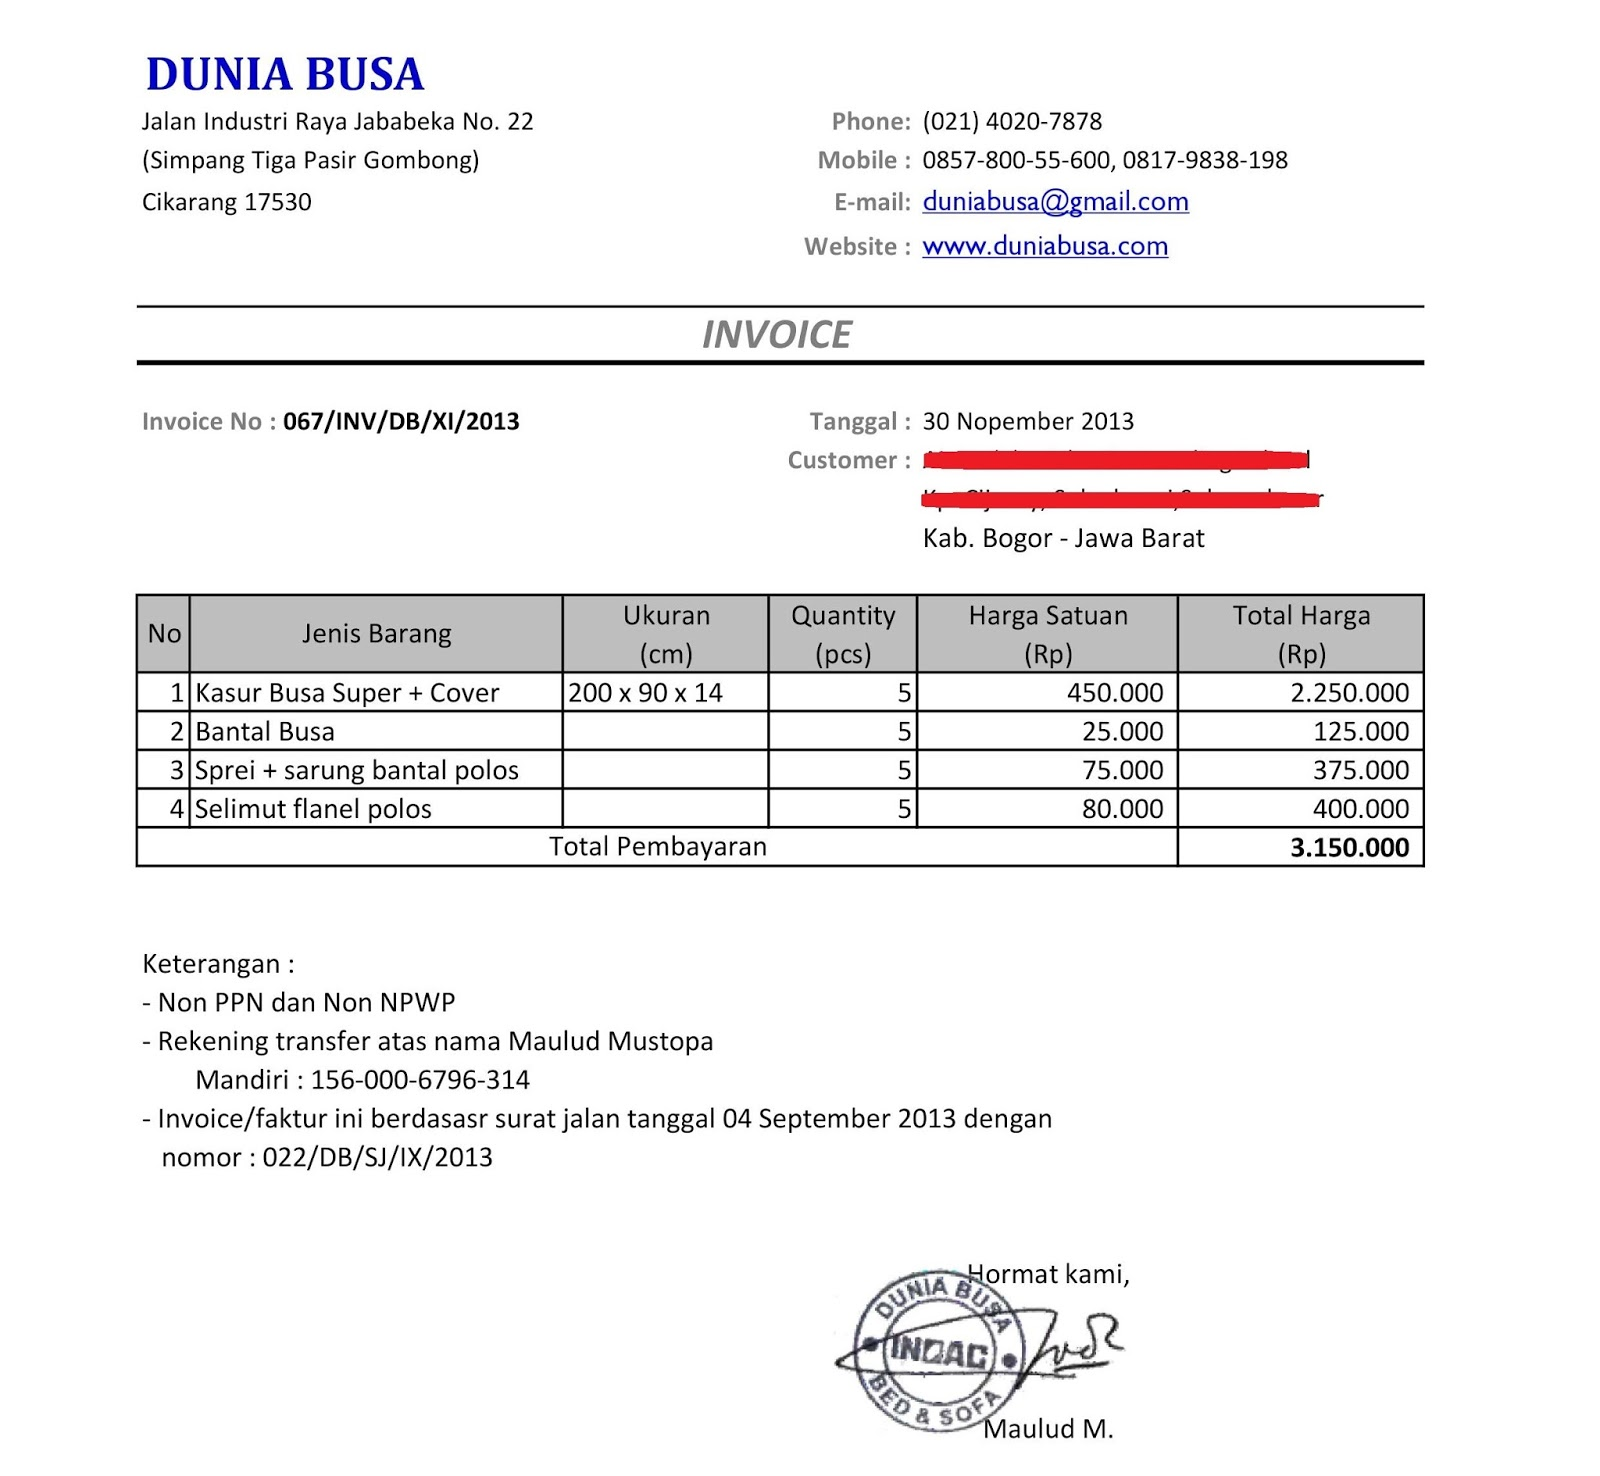 Usdgus  Outstanding Free Invoice Online  Create Invoice Online  Invoice Template  With Fair Contoh Format Invoice Atau Surat Tagihan  Brankas Arsip  Free Invoice Online With Cool Receipt Confirmation Template Also Receipt Ticket In Addition Receipts Samples And Louis Vuitton Receipts As Well As Apartment Rental Receipt Additionally Rent Payment Receipt Template Word From Sklepco With Usdgus  Fair Free Invoice Online  Create Invoice Online  Invoice Template  With Cool Contoh Format Invoice Atau Surat Tagihan  Brankas Arsip  Free Invoice Online And Outstanding Receipt Confirmation Template Also Receipt Ticket In Addition Receipts Samples From Sklepco